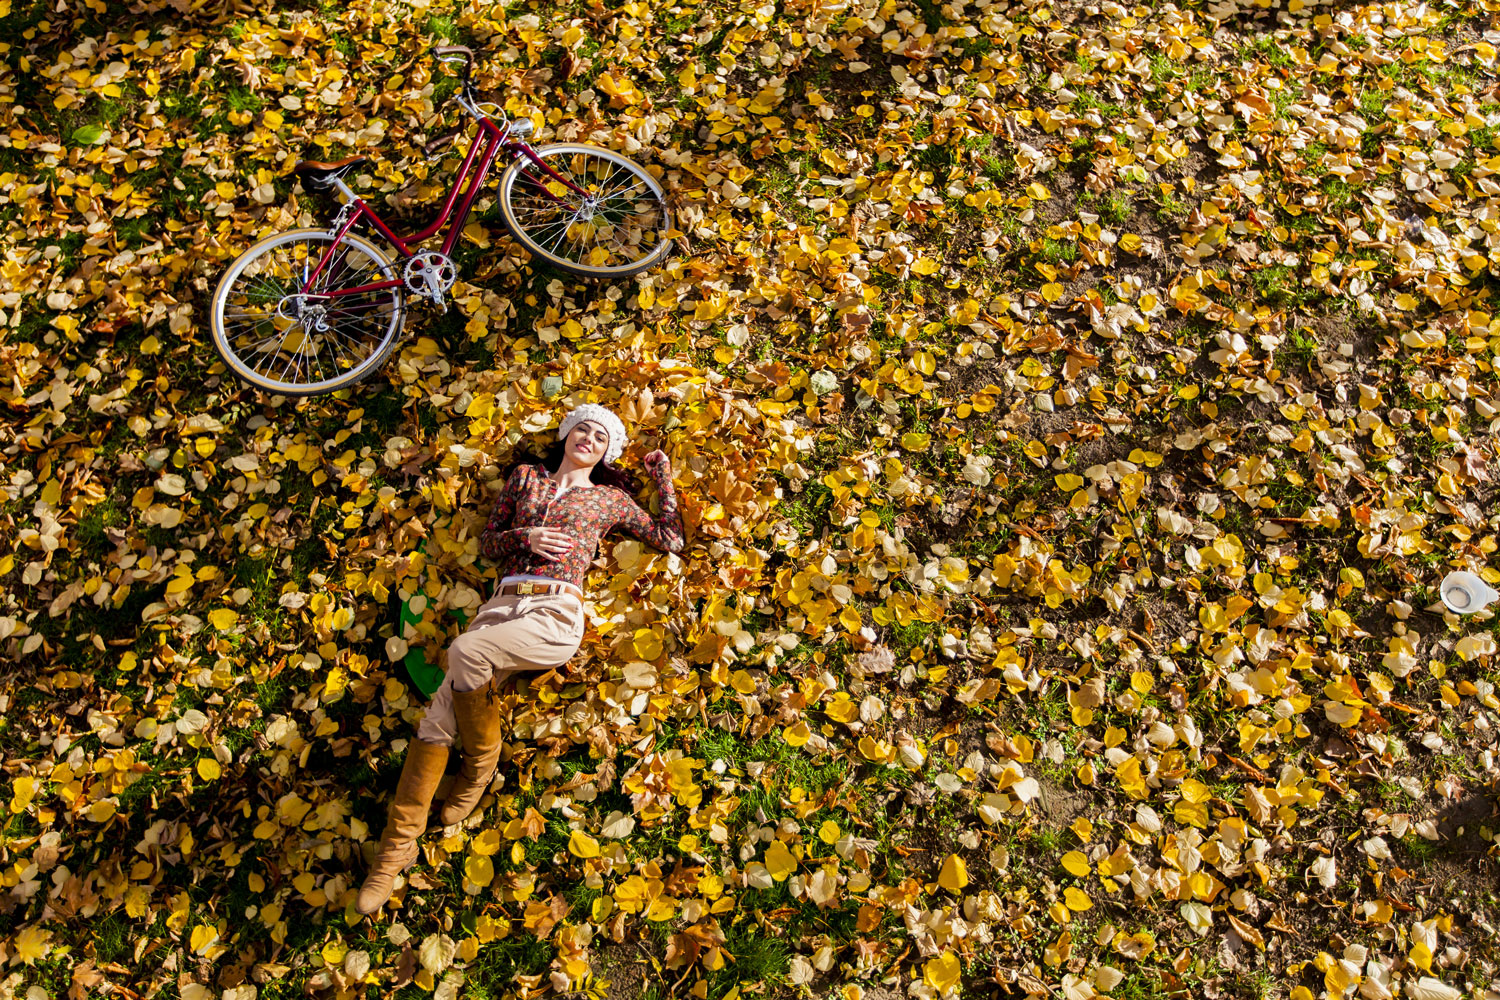 Girl lying in the leaves next to vintage bicycle. bella magazine